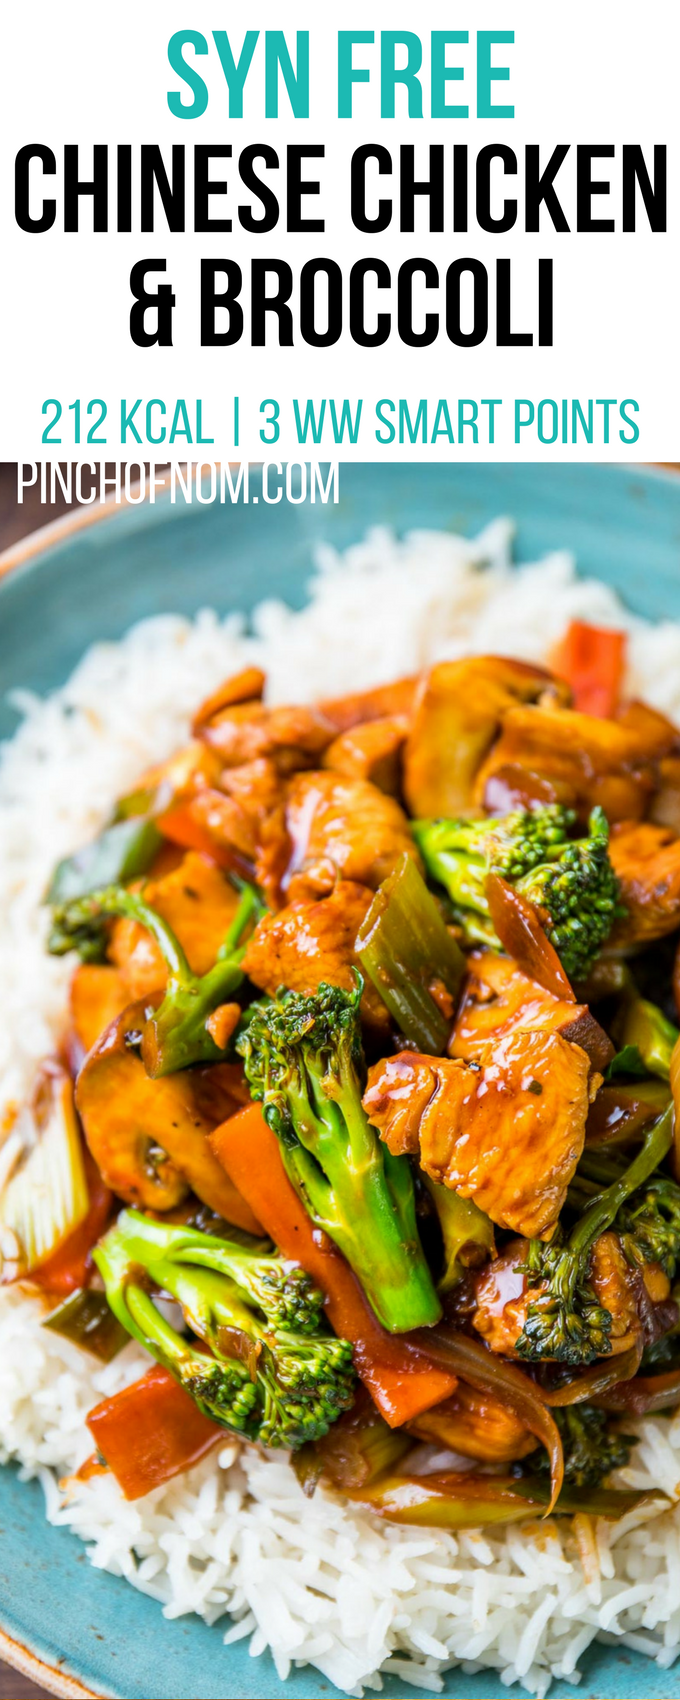 Syn free chinese chicken and broccoli pinch of nom slimming world syn free chinese chicken and broccoli pinch of nom slimming world recipes 212 kcal syn free forumfinder Choice Image